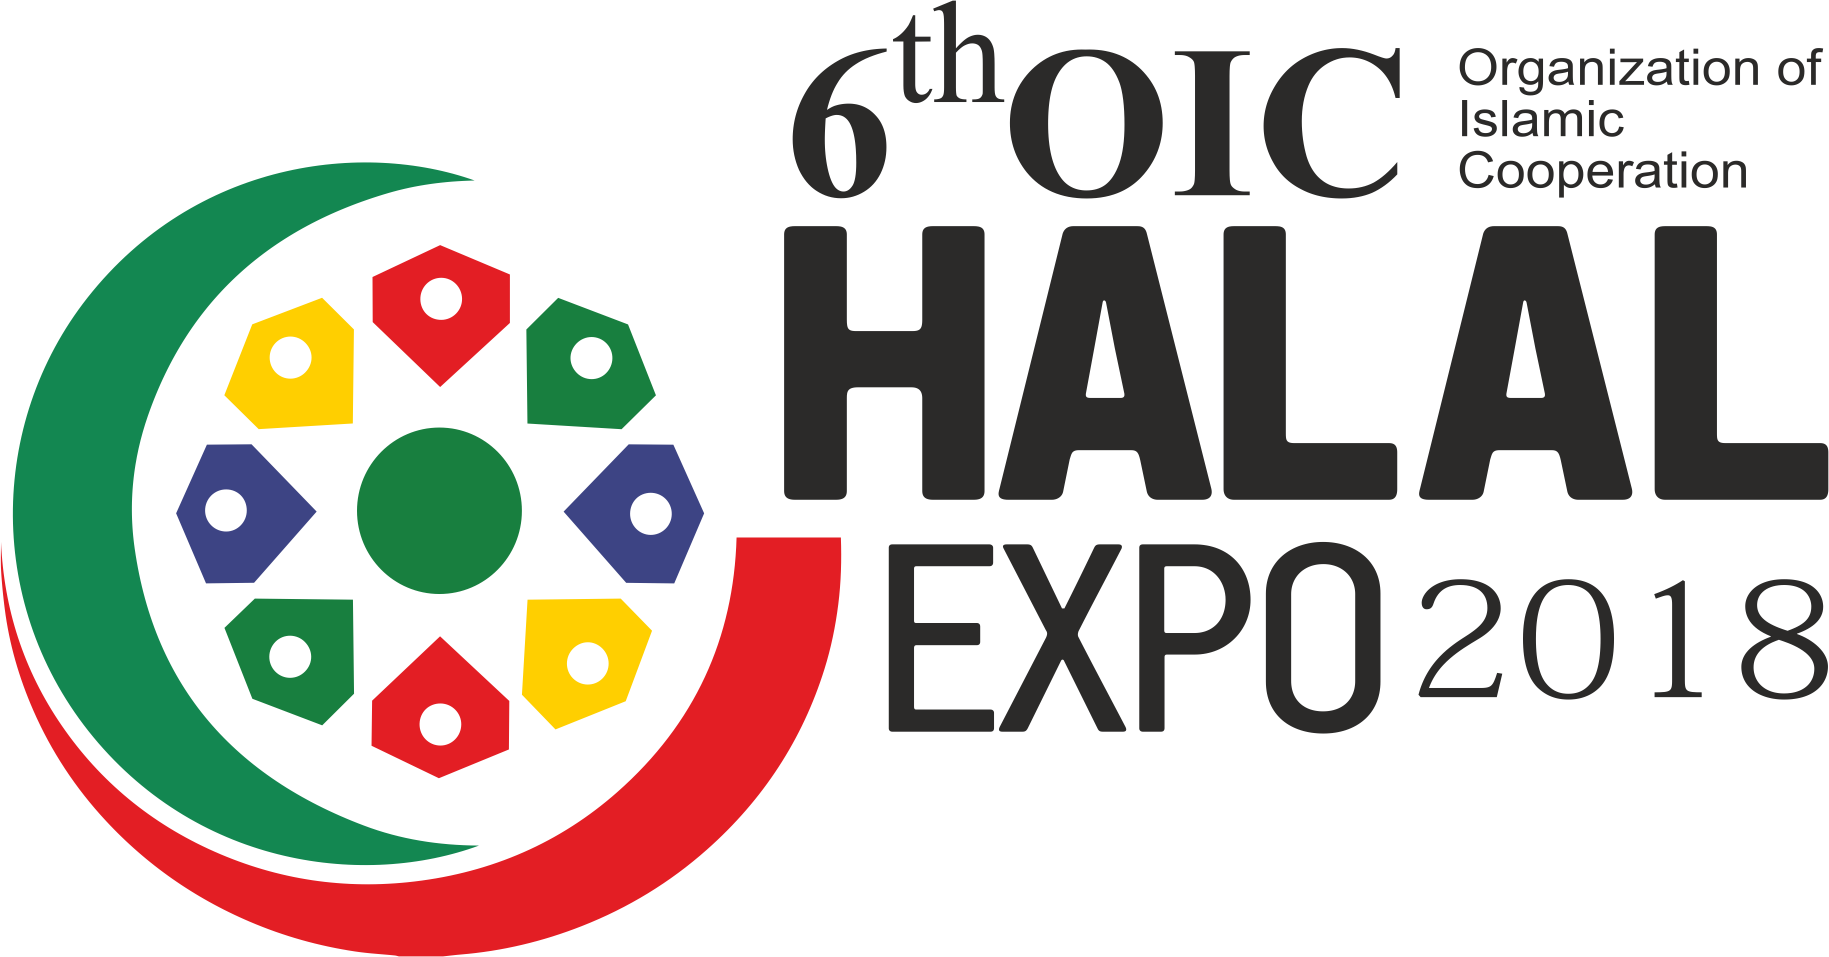 6th OIC Halal Expo